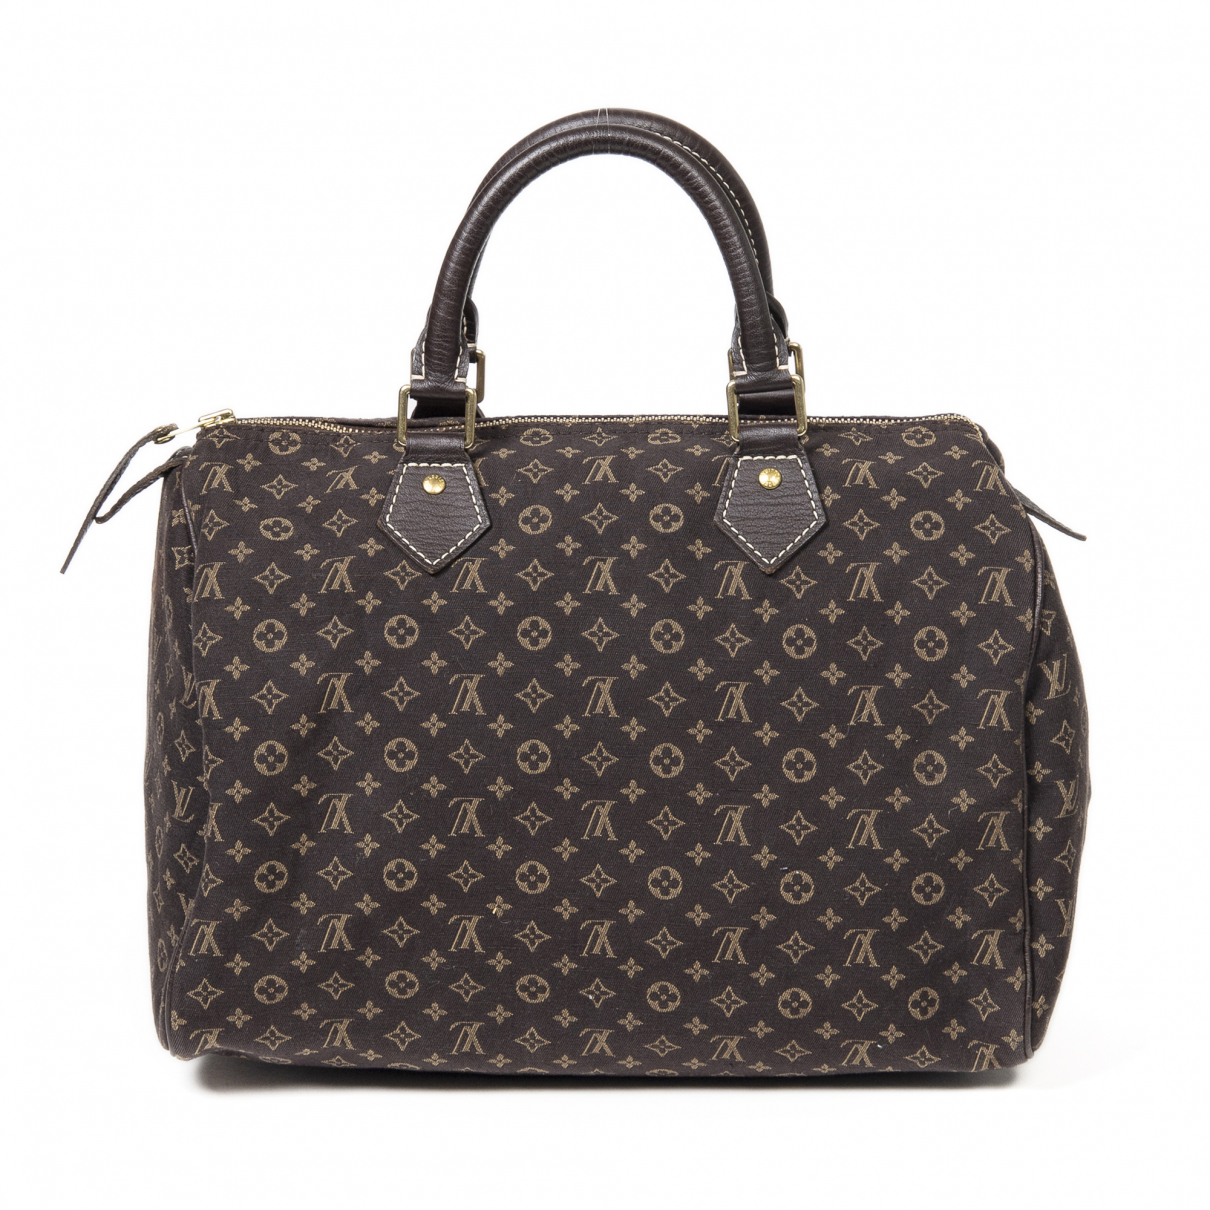 Louis Vuitton \N Handtasche in  Braun Baumwolle